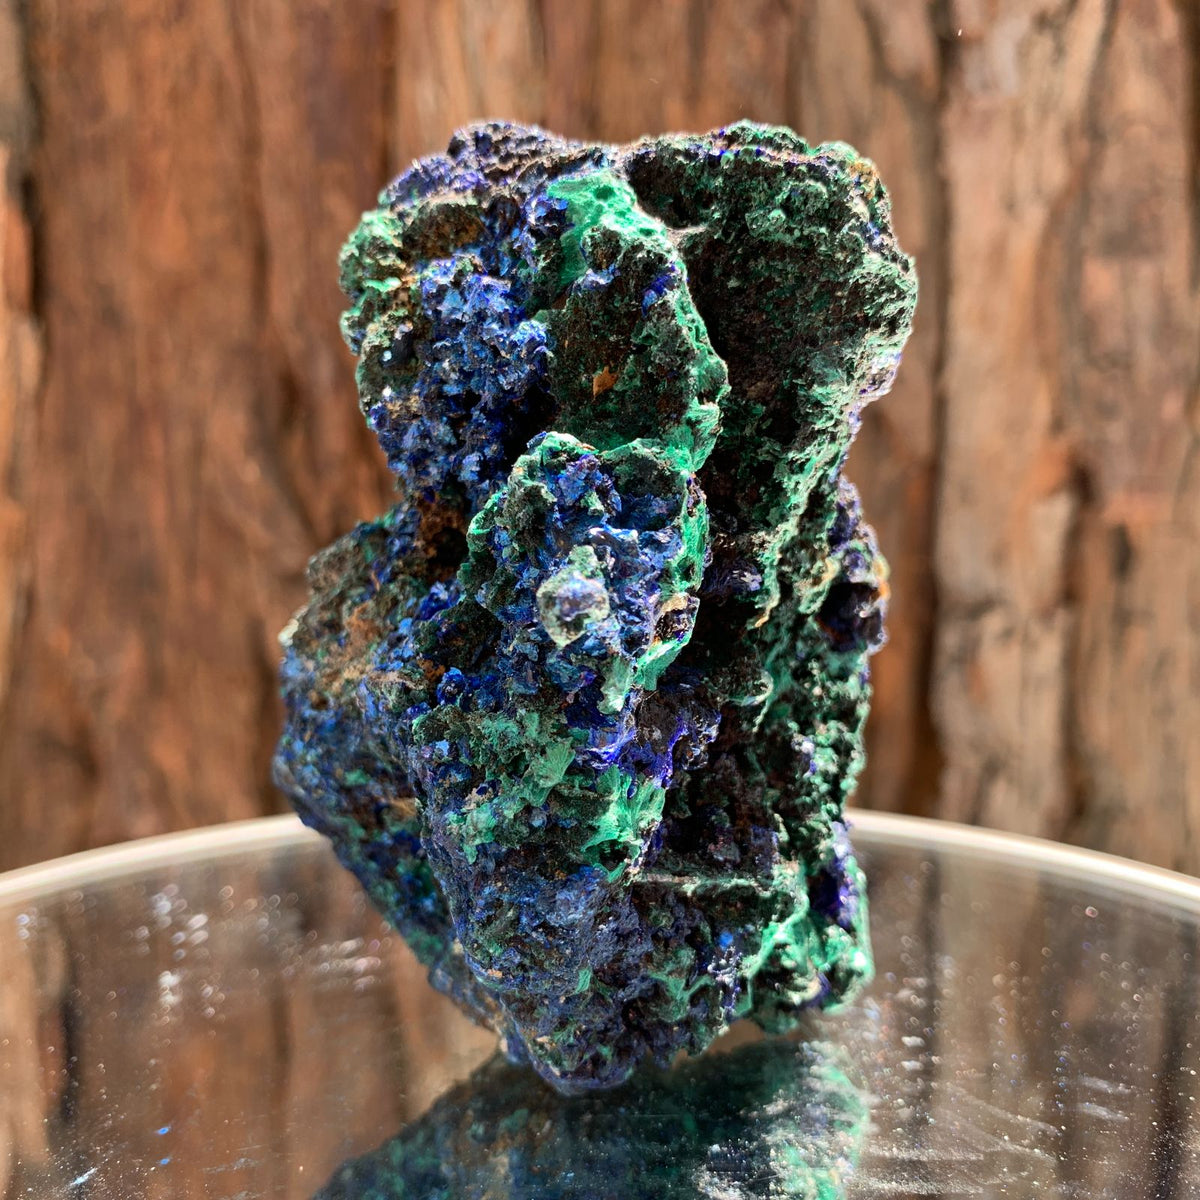 8.5cm 314g Azurite from Sepon Mine, Laos